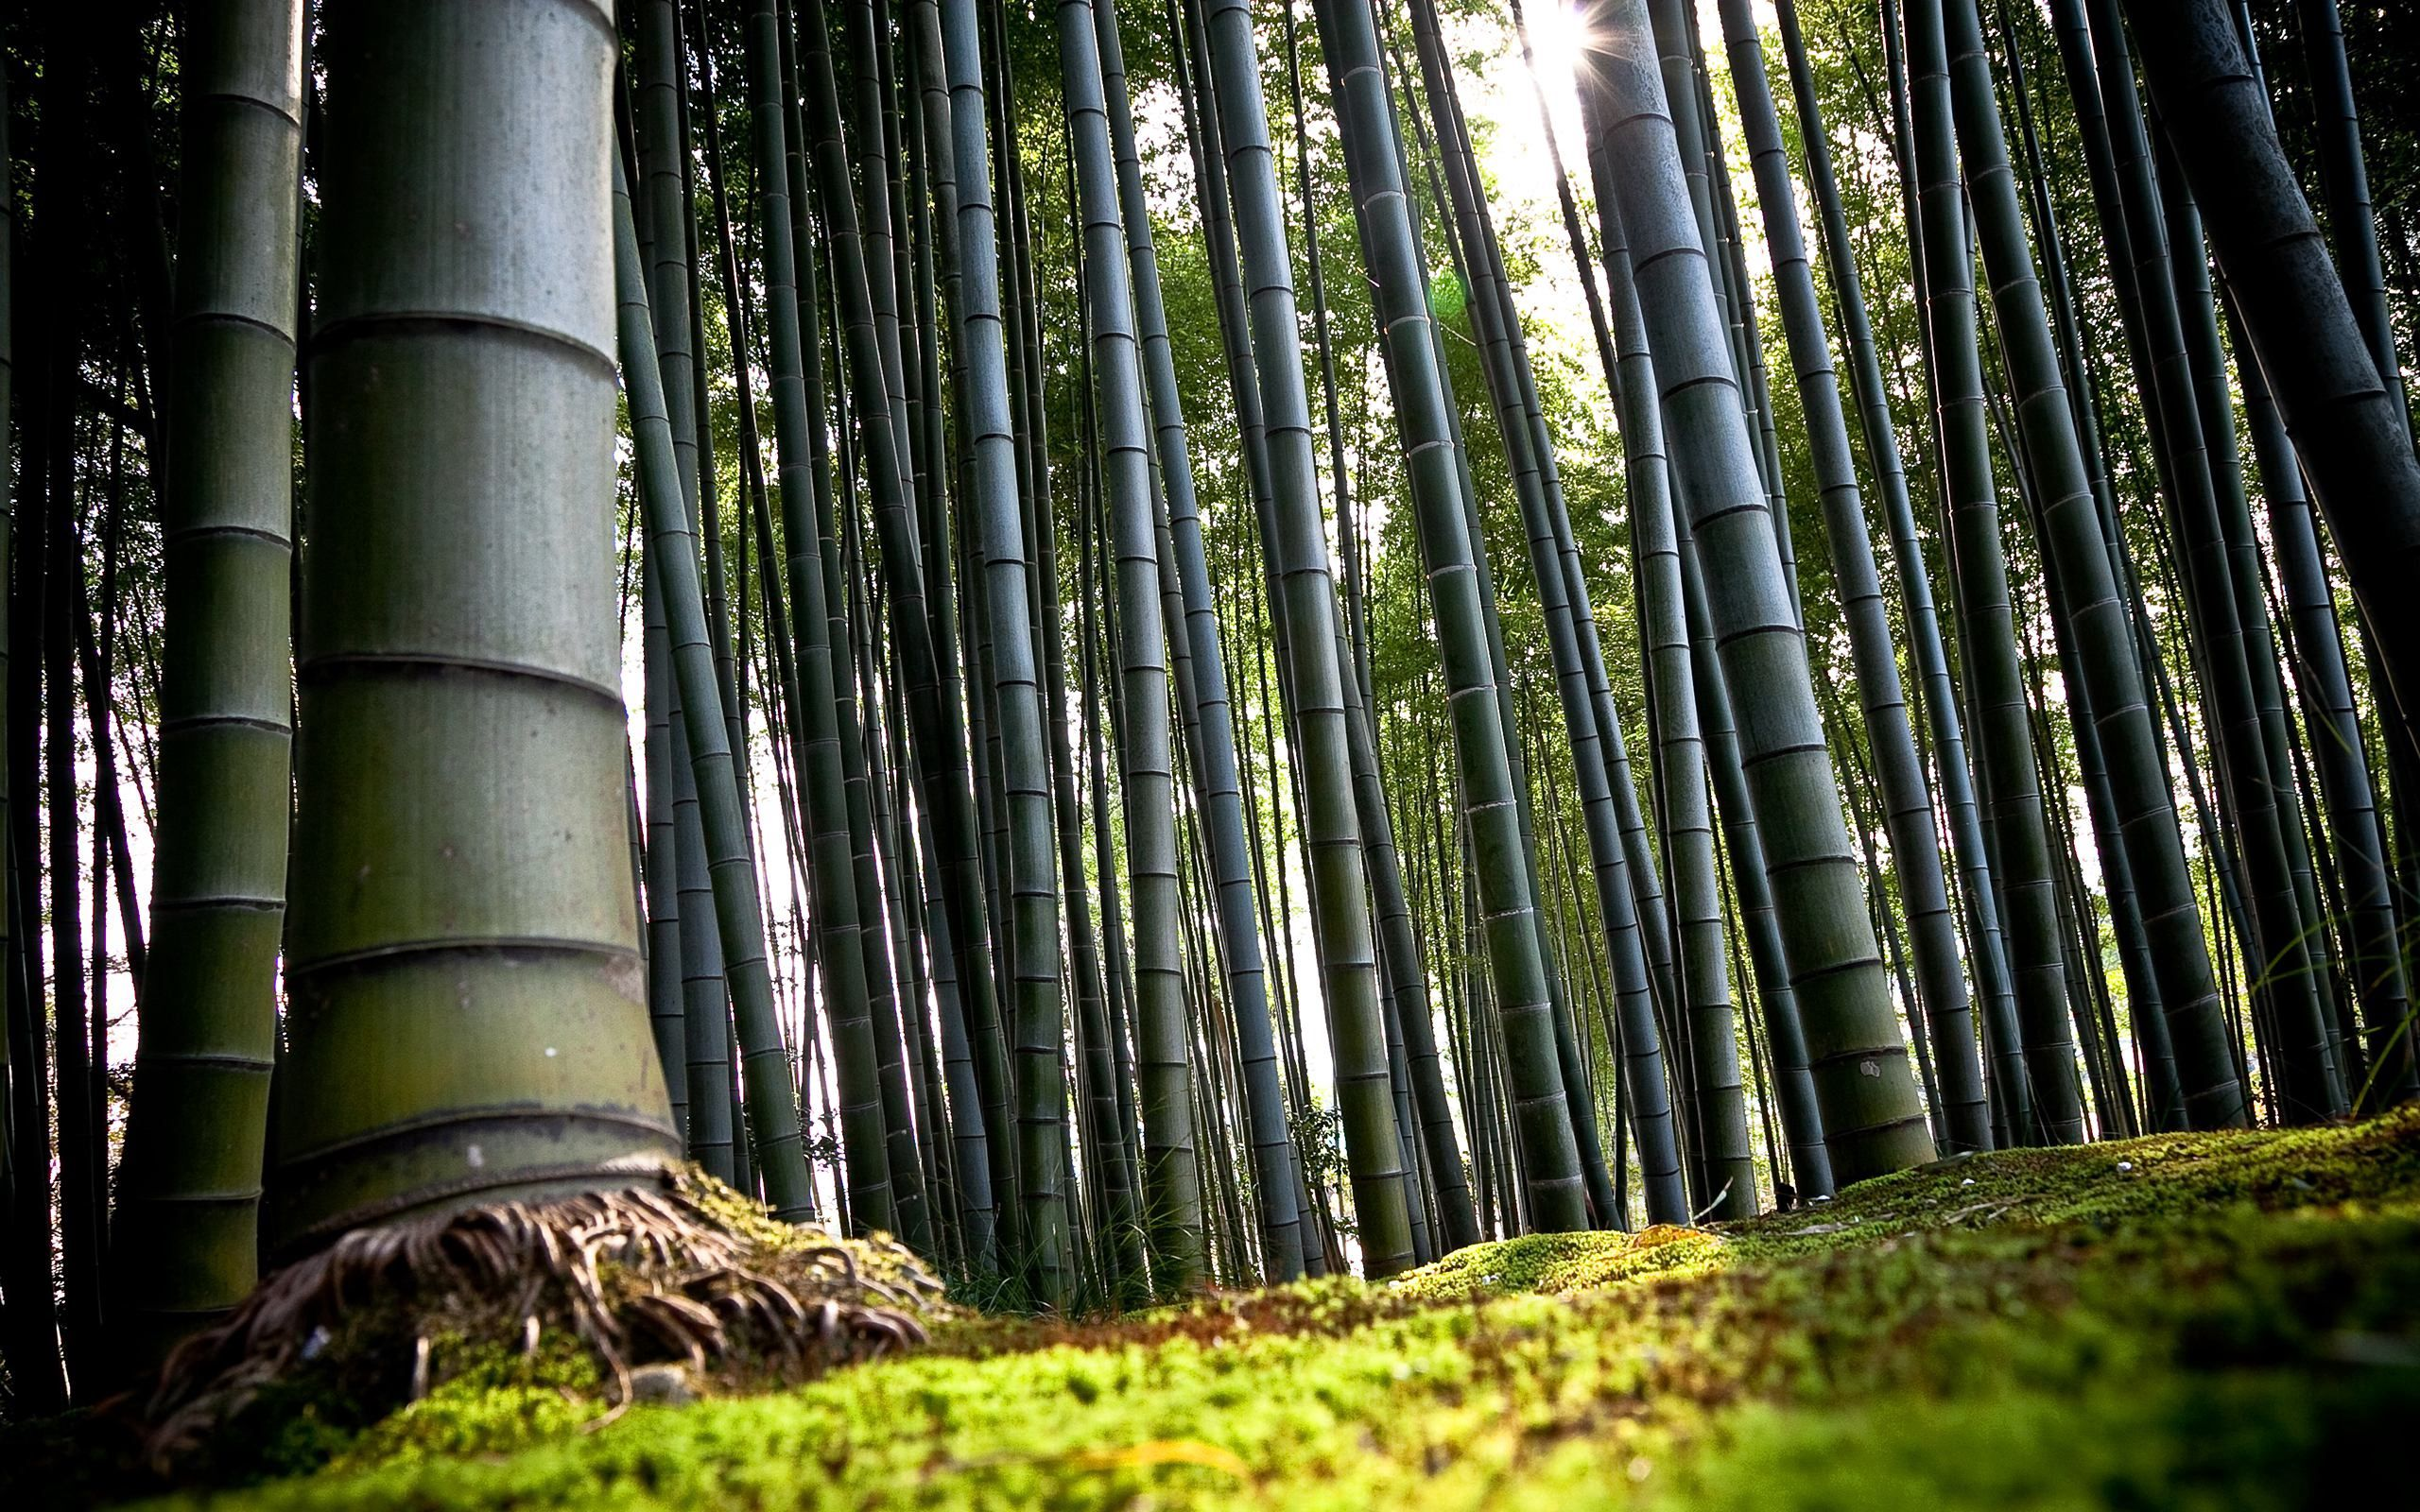 68995 download wallpaper Nature, Bamboo, Stems, Roots, Land, Earth screensavers and pictures for free